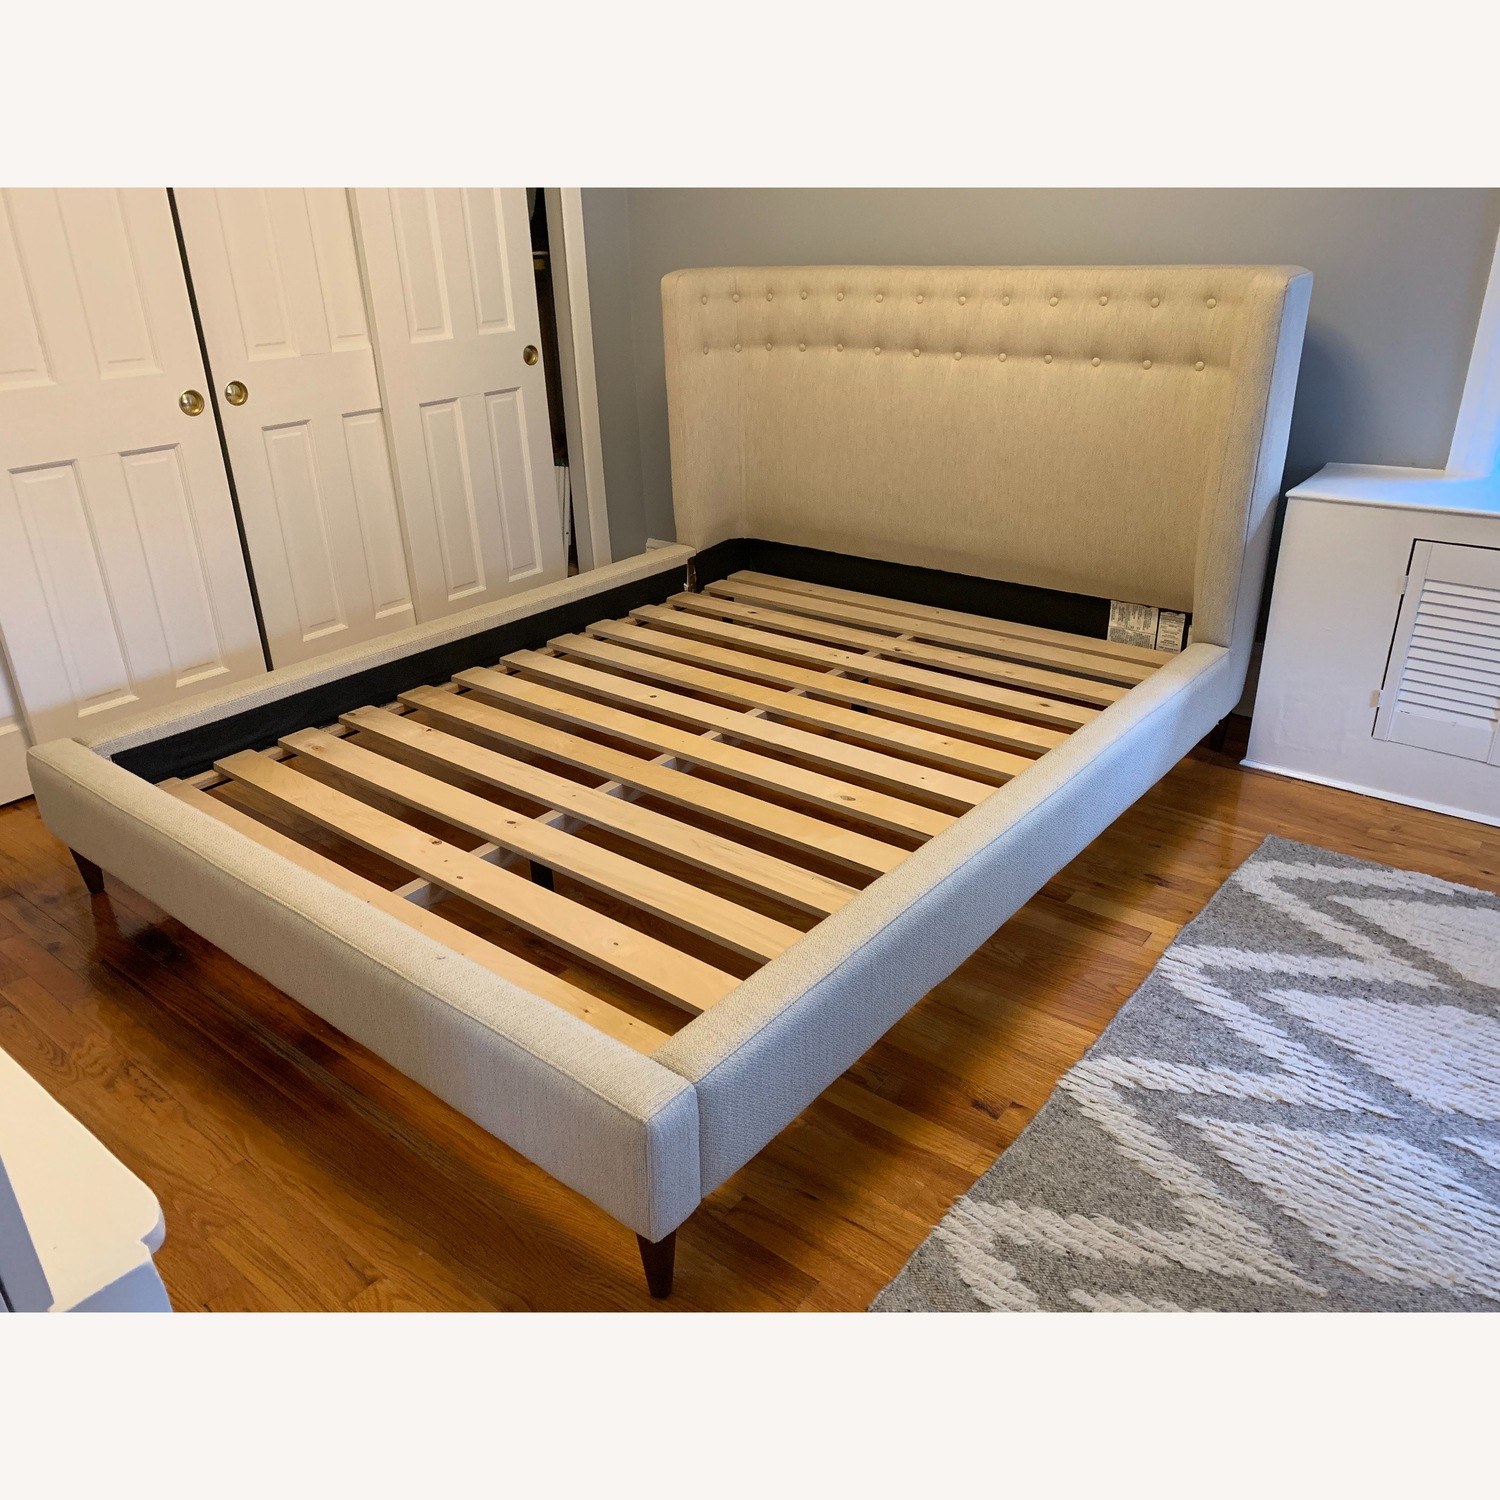 Crate & Barrel Gia Upholstered Queen Bed